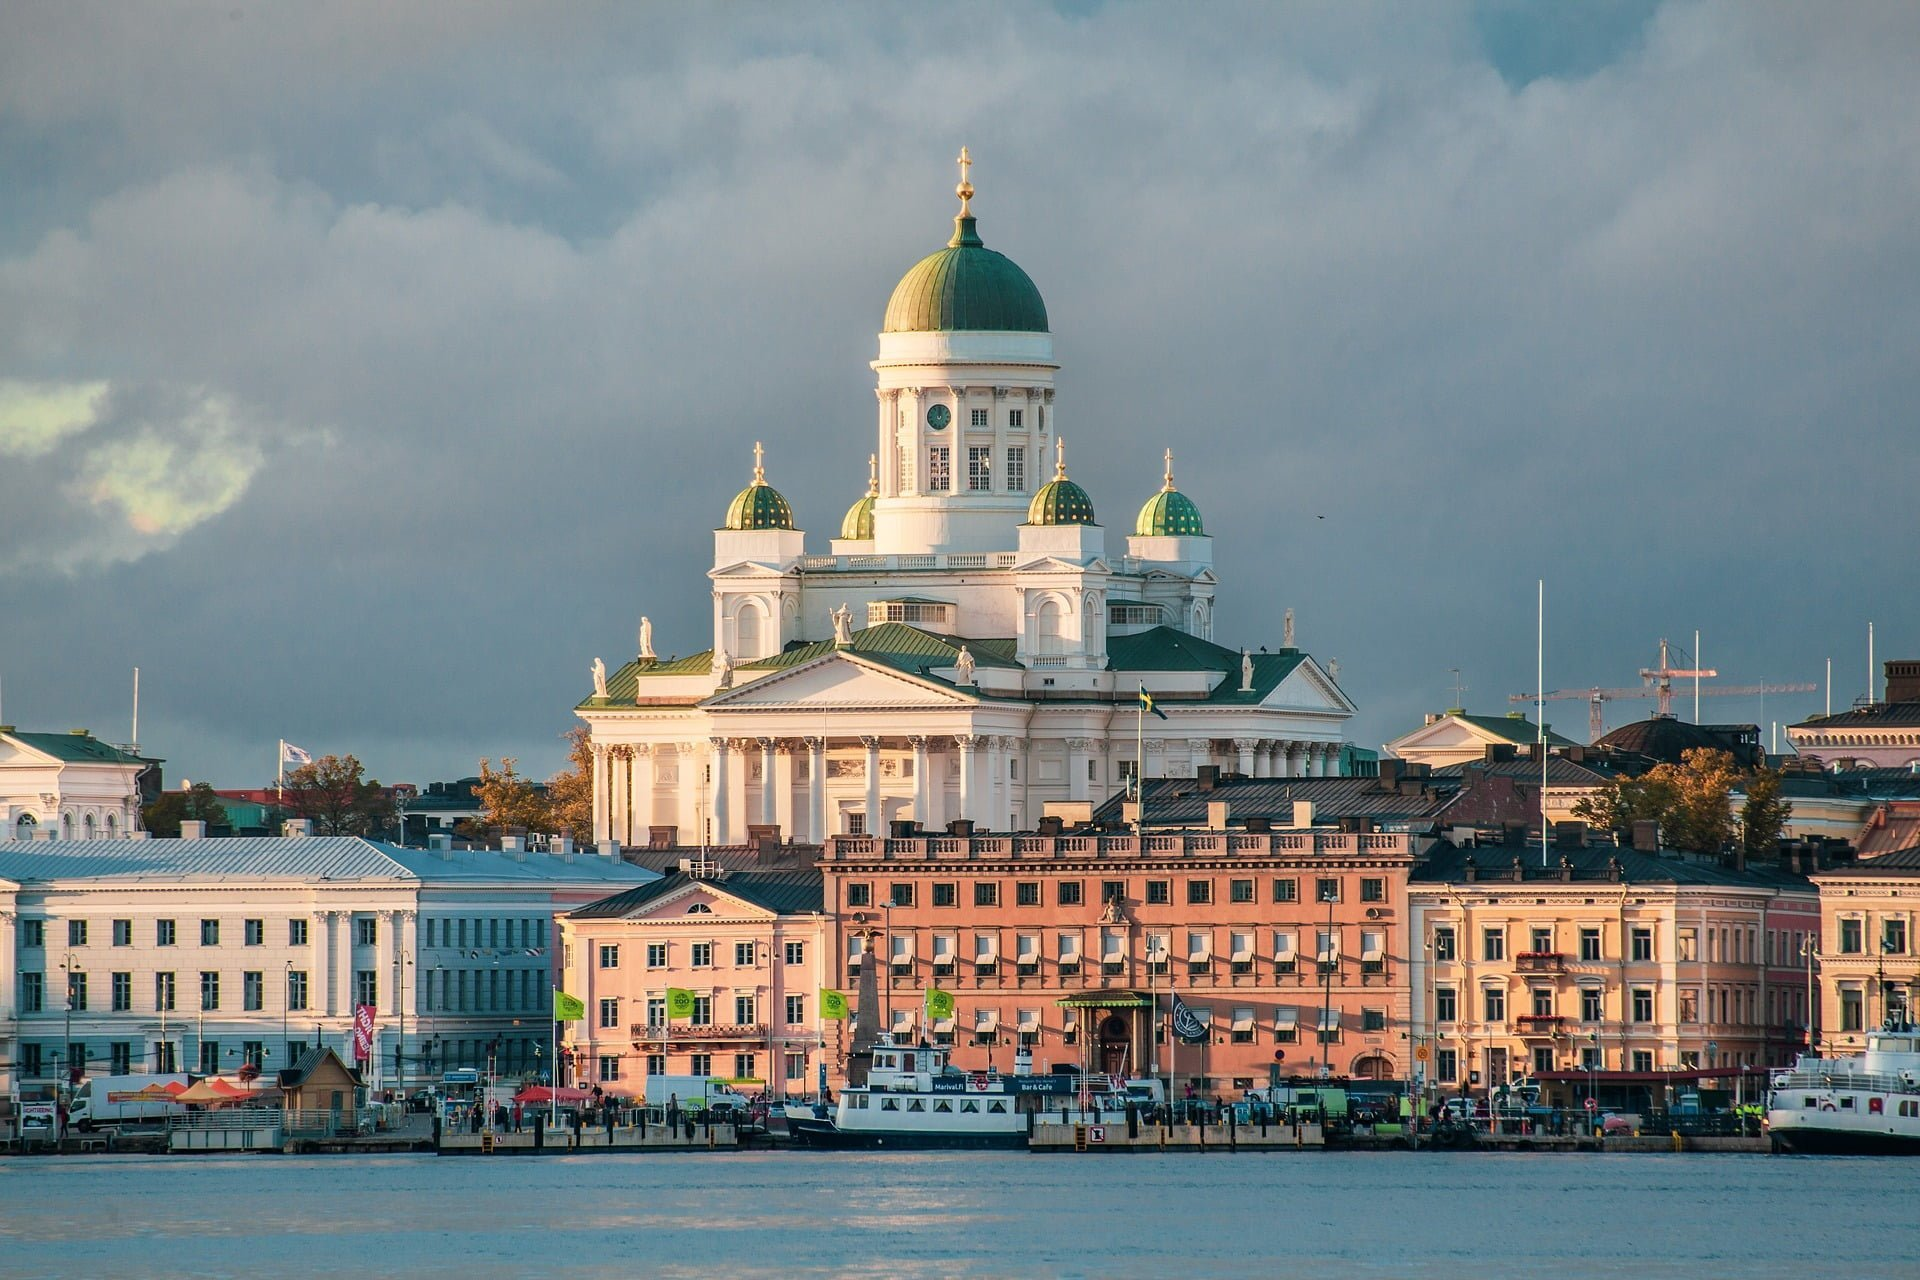 helsinki-cathedral-4189824_1920